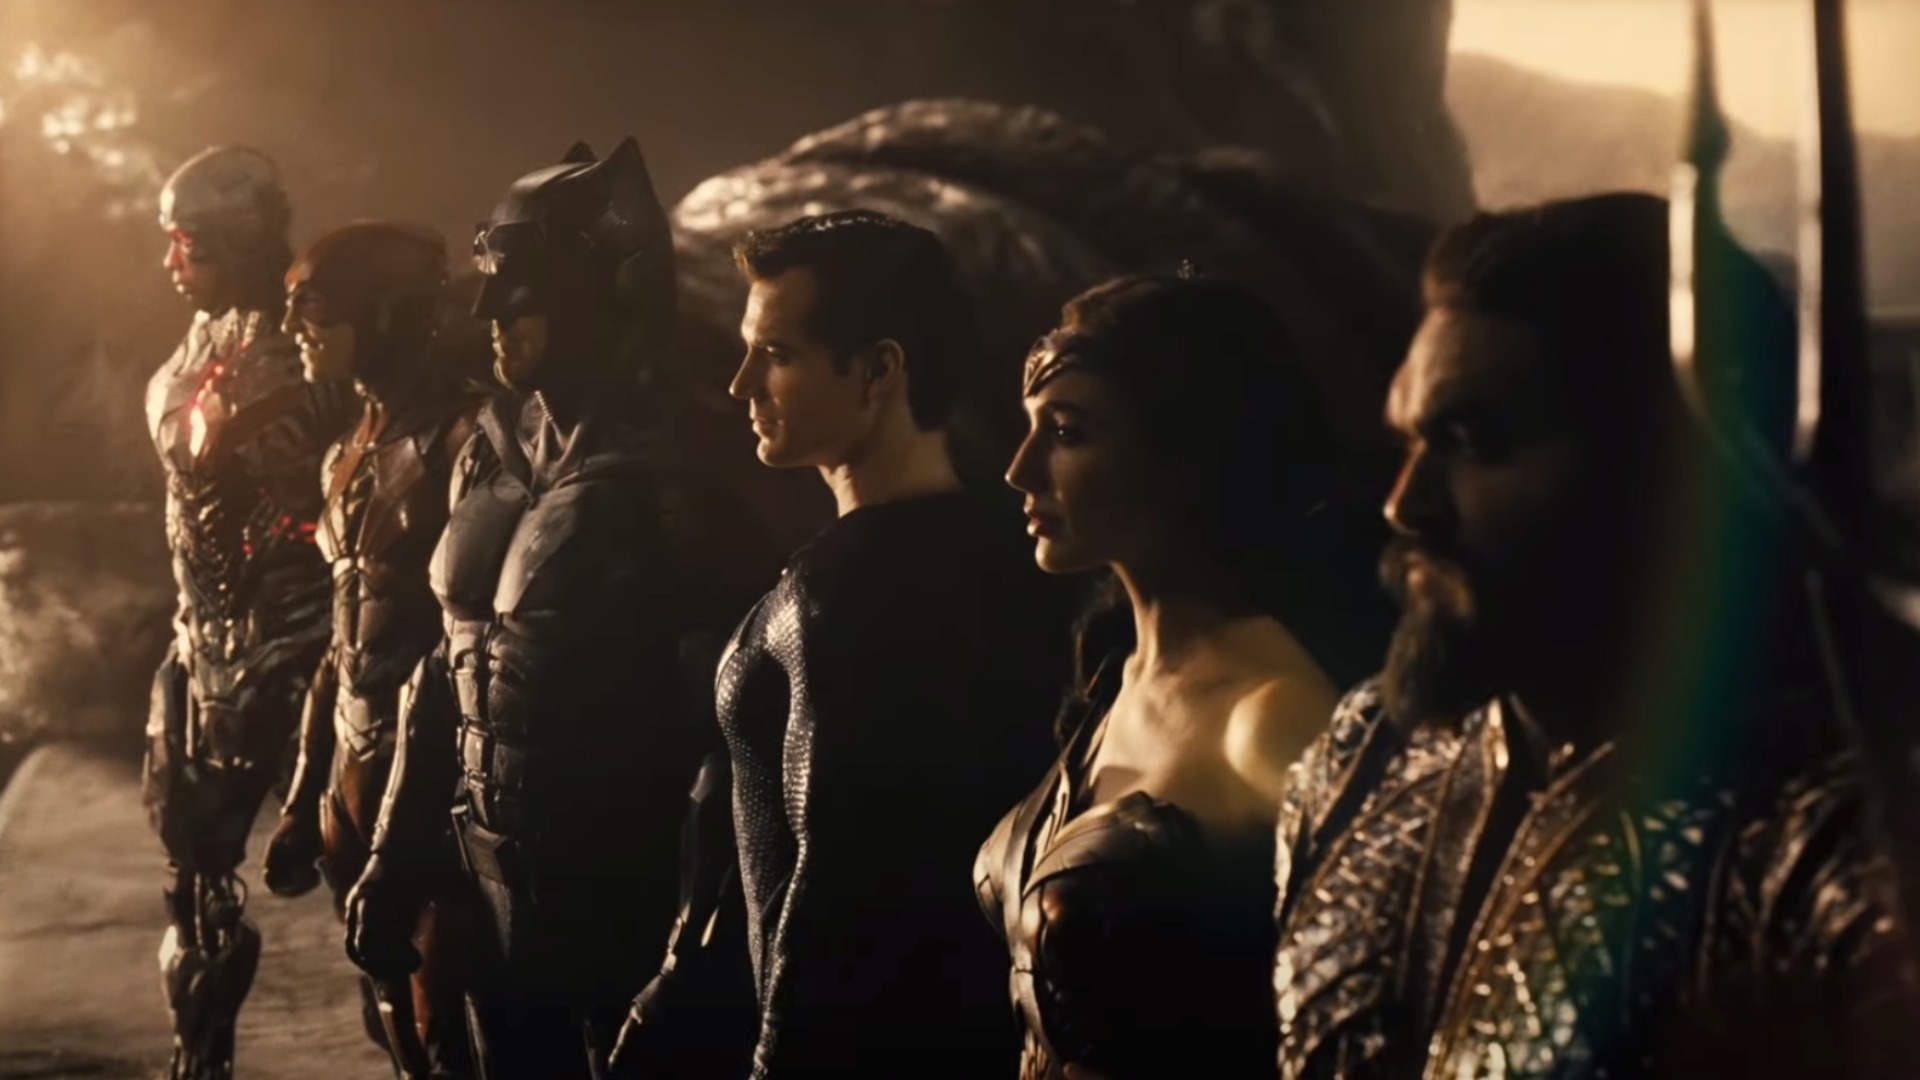 Cyborg, Flash, Batman, Superman, Wonder Woman, Aquatman - The Justice League